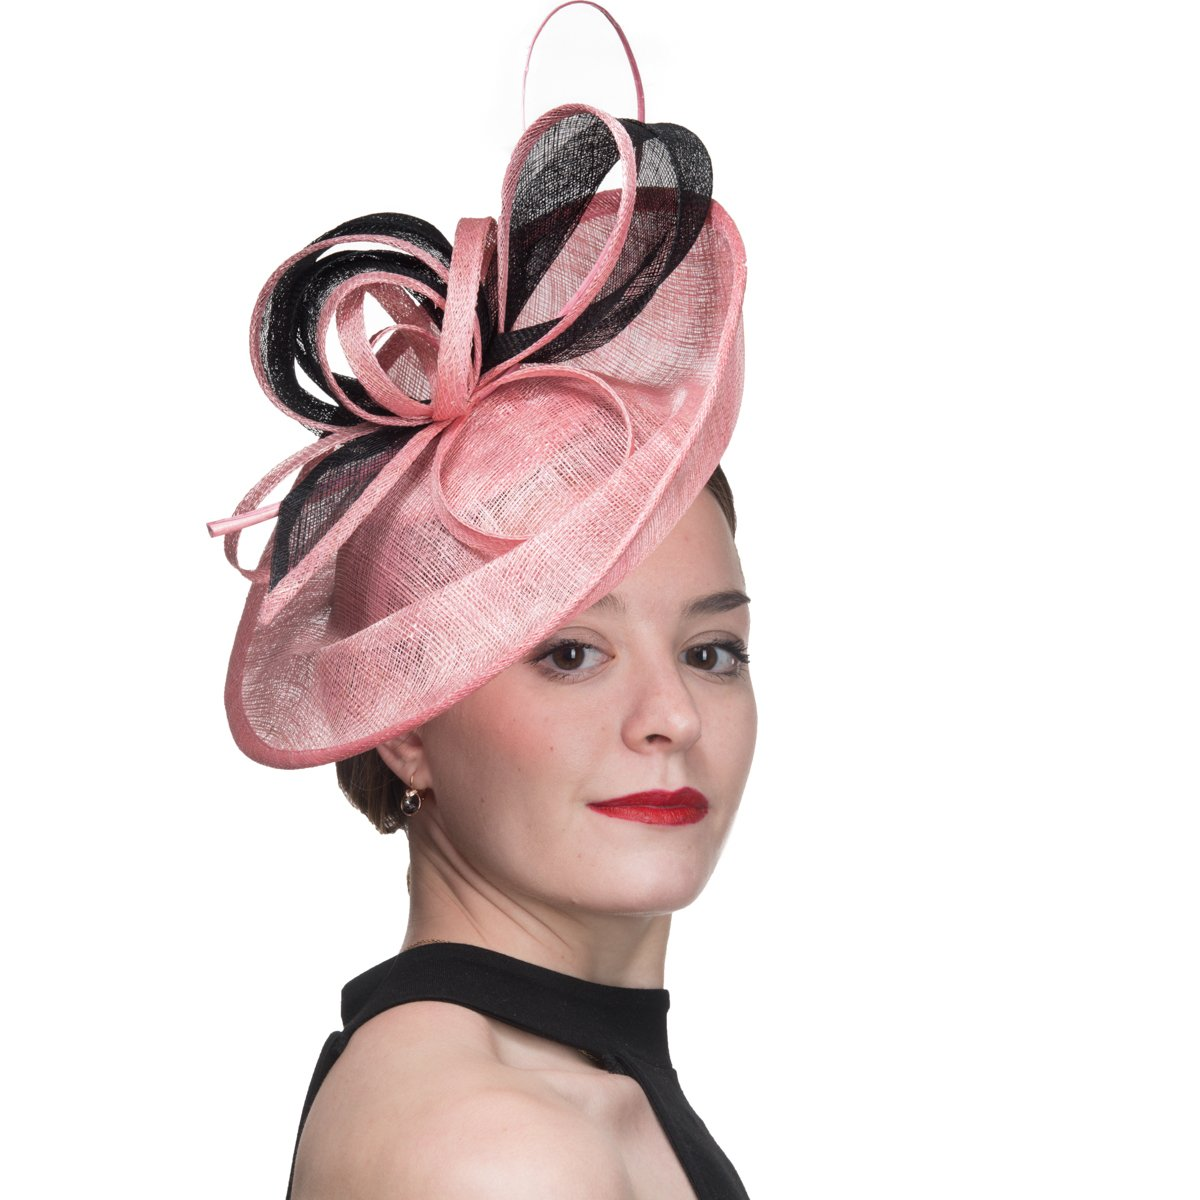 KaKyCo 102059-2 Tone Sinamary Headband Fascinator Cocktail Hats - Pink/Black